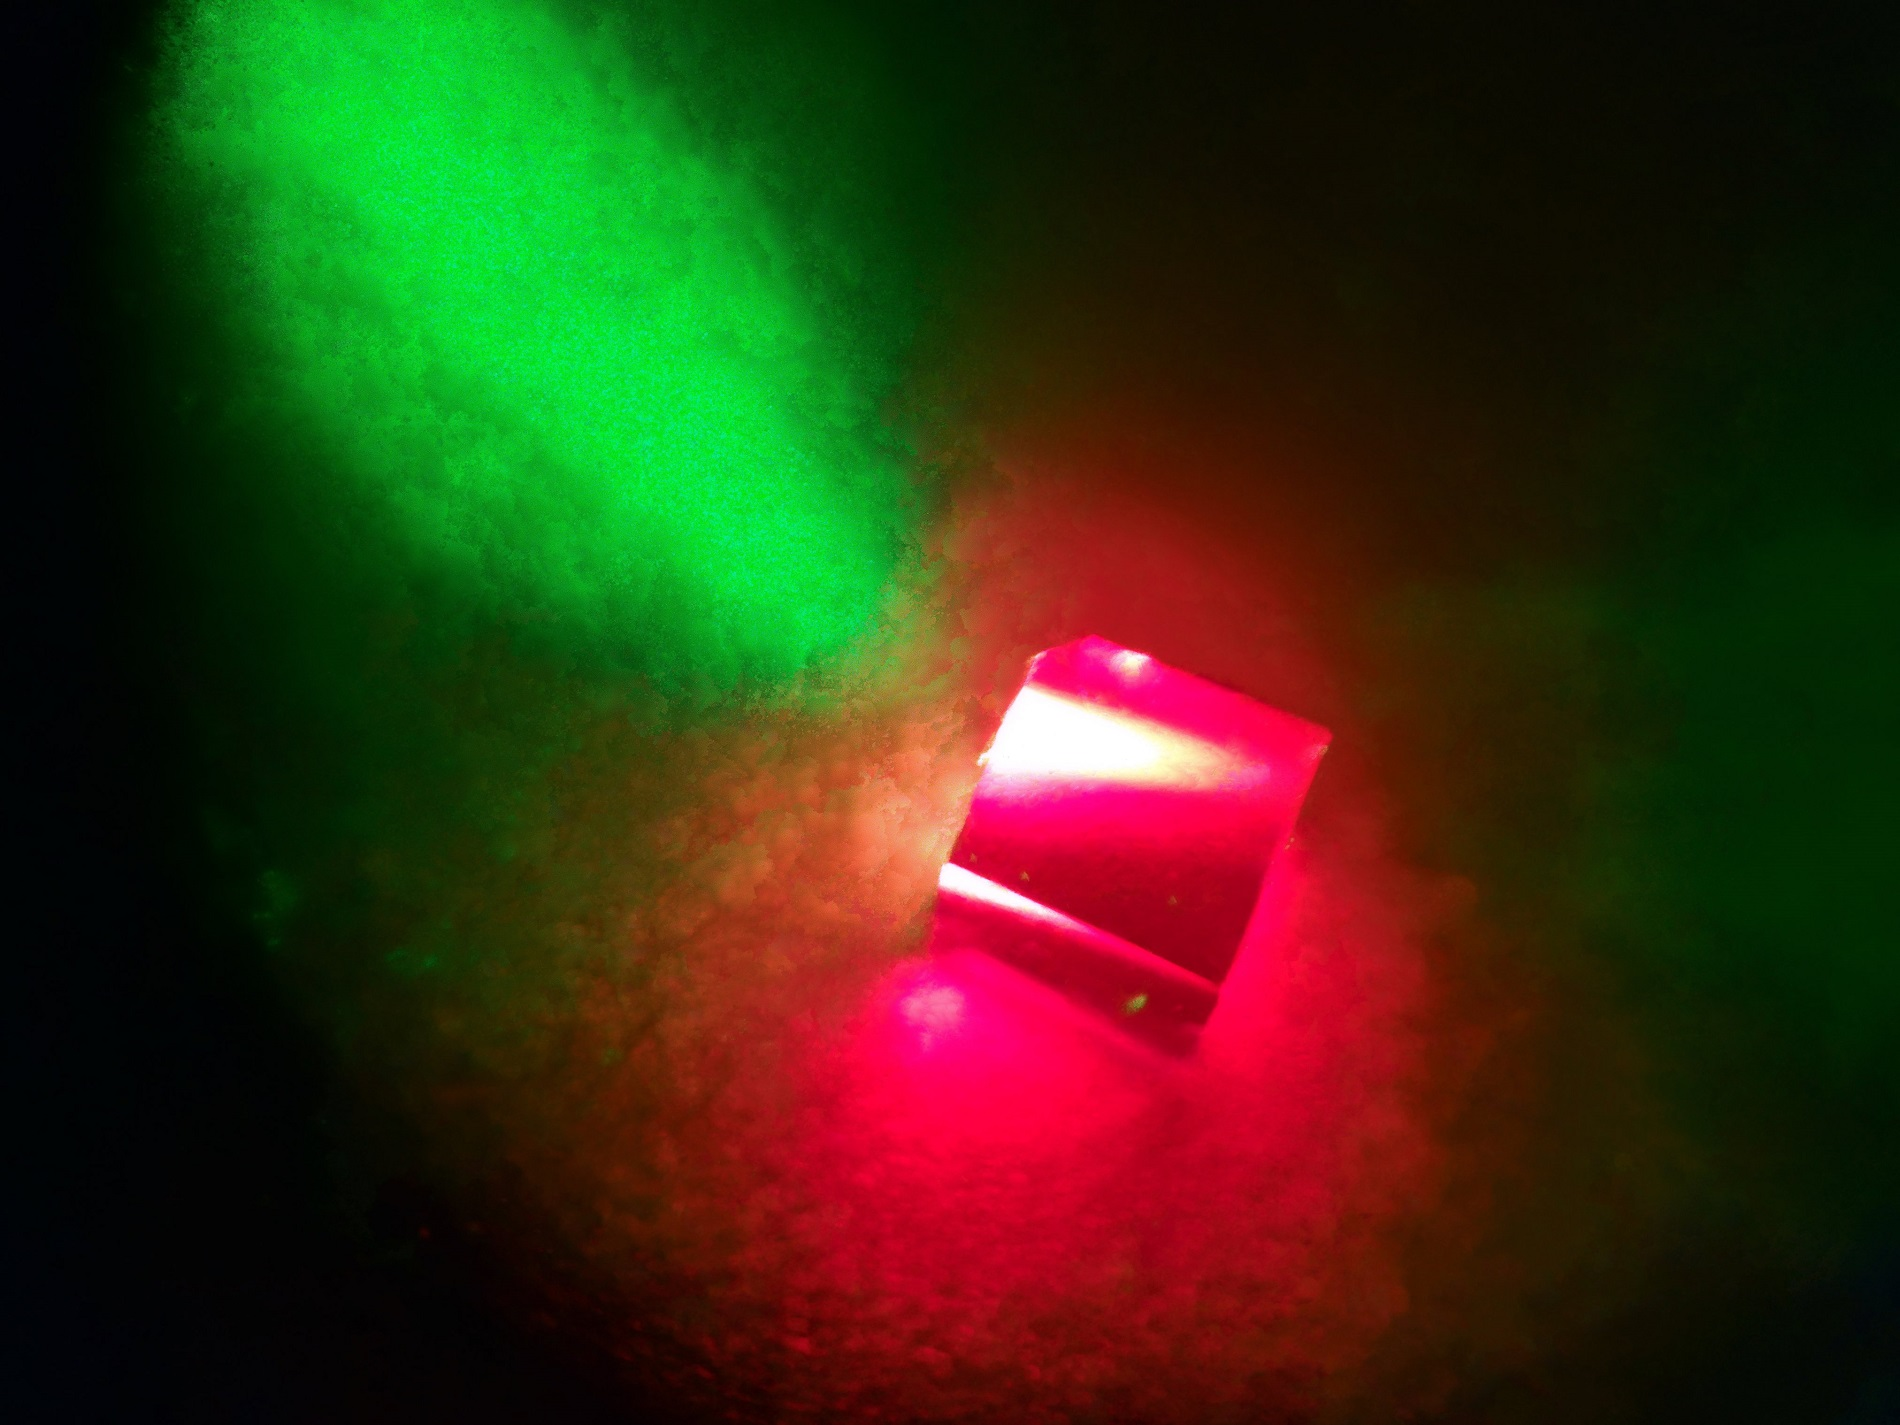 A diamond containing nitrogen-vacancy defects centres is illuminated by a 532-nm green laser